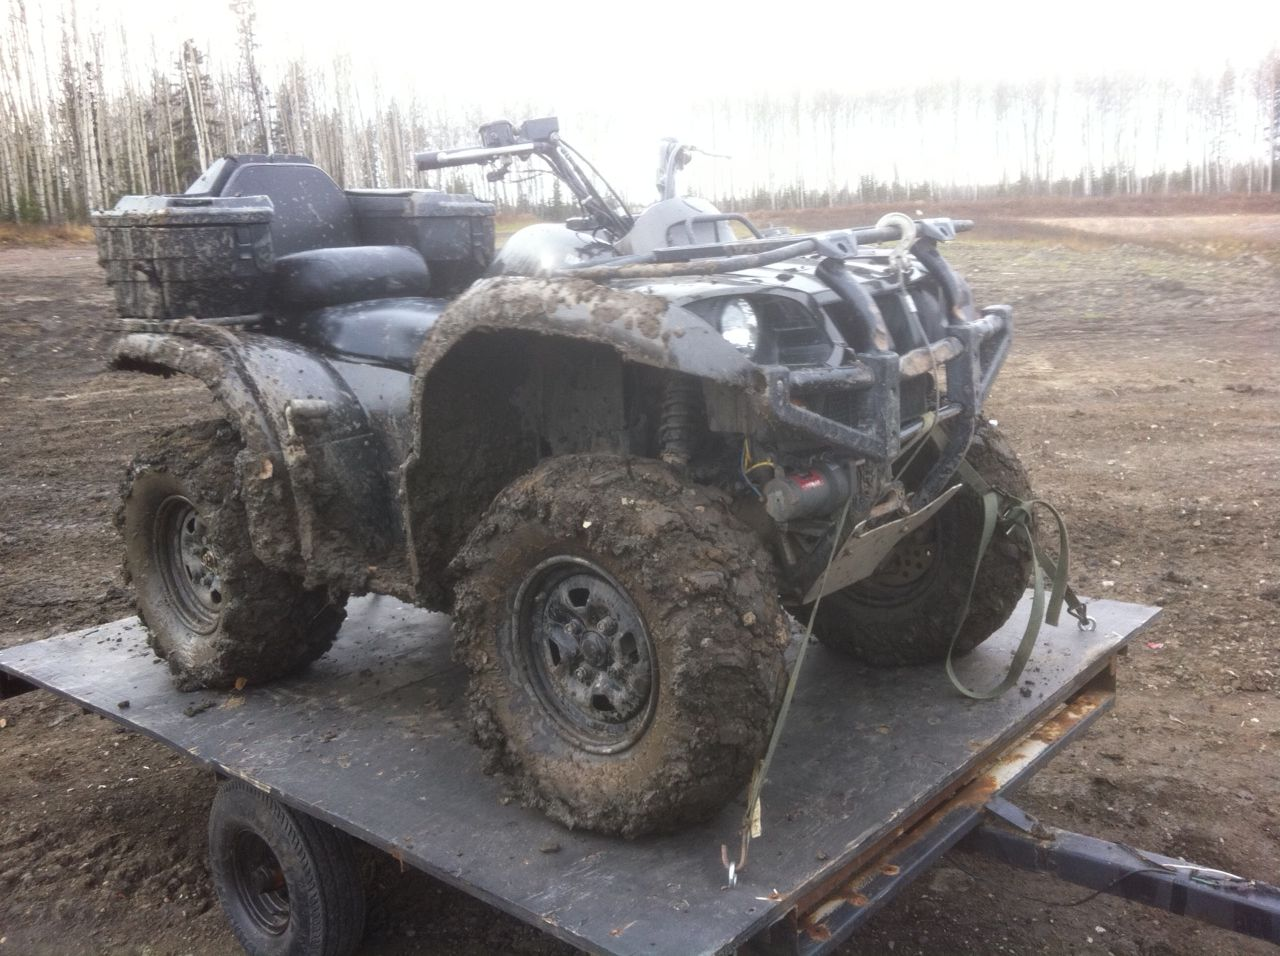 The girlfriends 03 yamaha grizzly 660 quads 4x4 for Yamaha grizzly 660 tracks